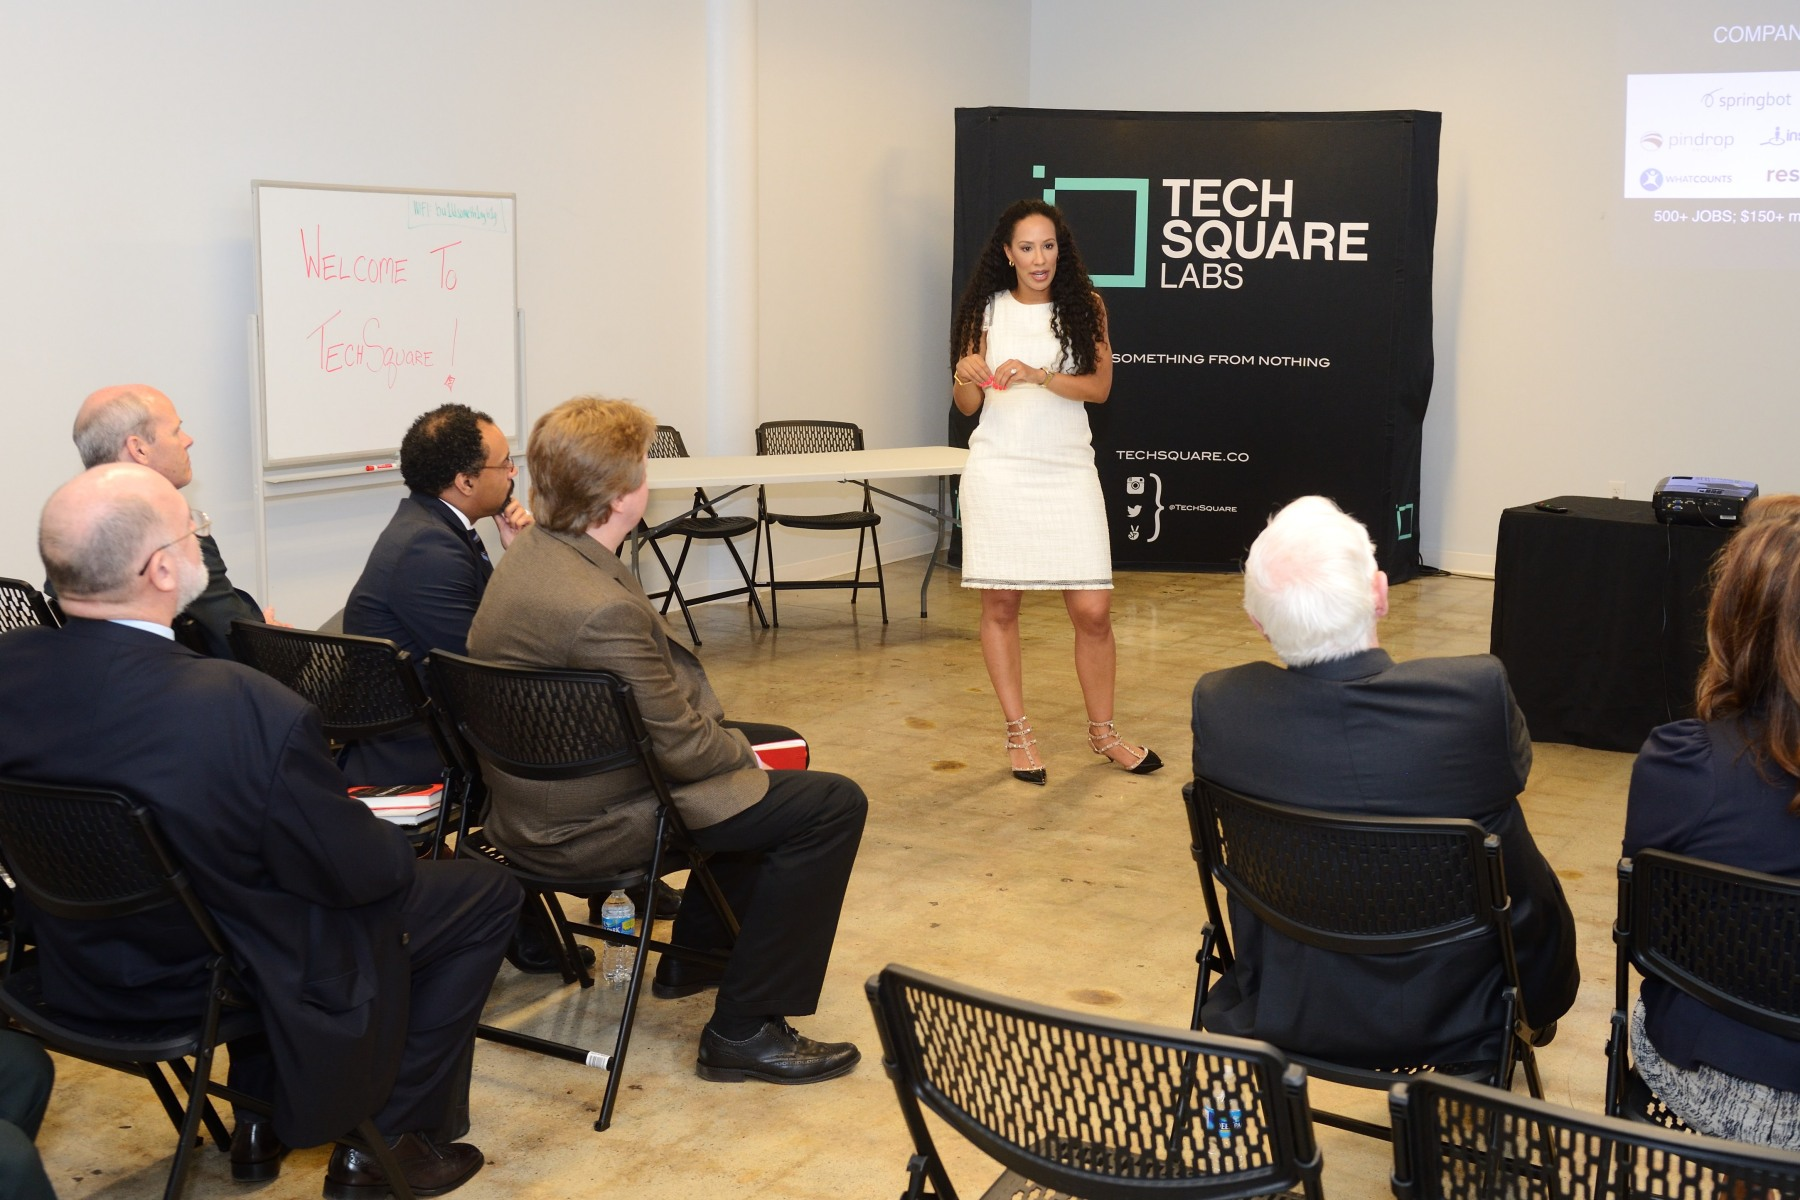 On May 25, 2016, His Excellency began his second day in Atlanta by visiting the Tech Square Labs, an incubator and seed fund, with 25 000 square feet of co-working and corporate innovation space.